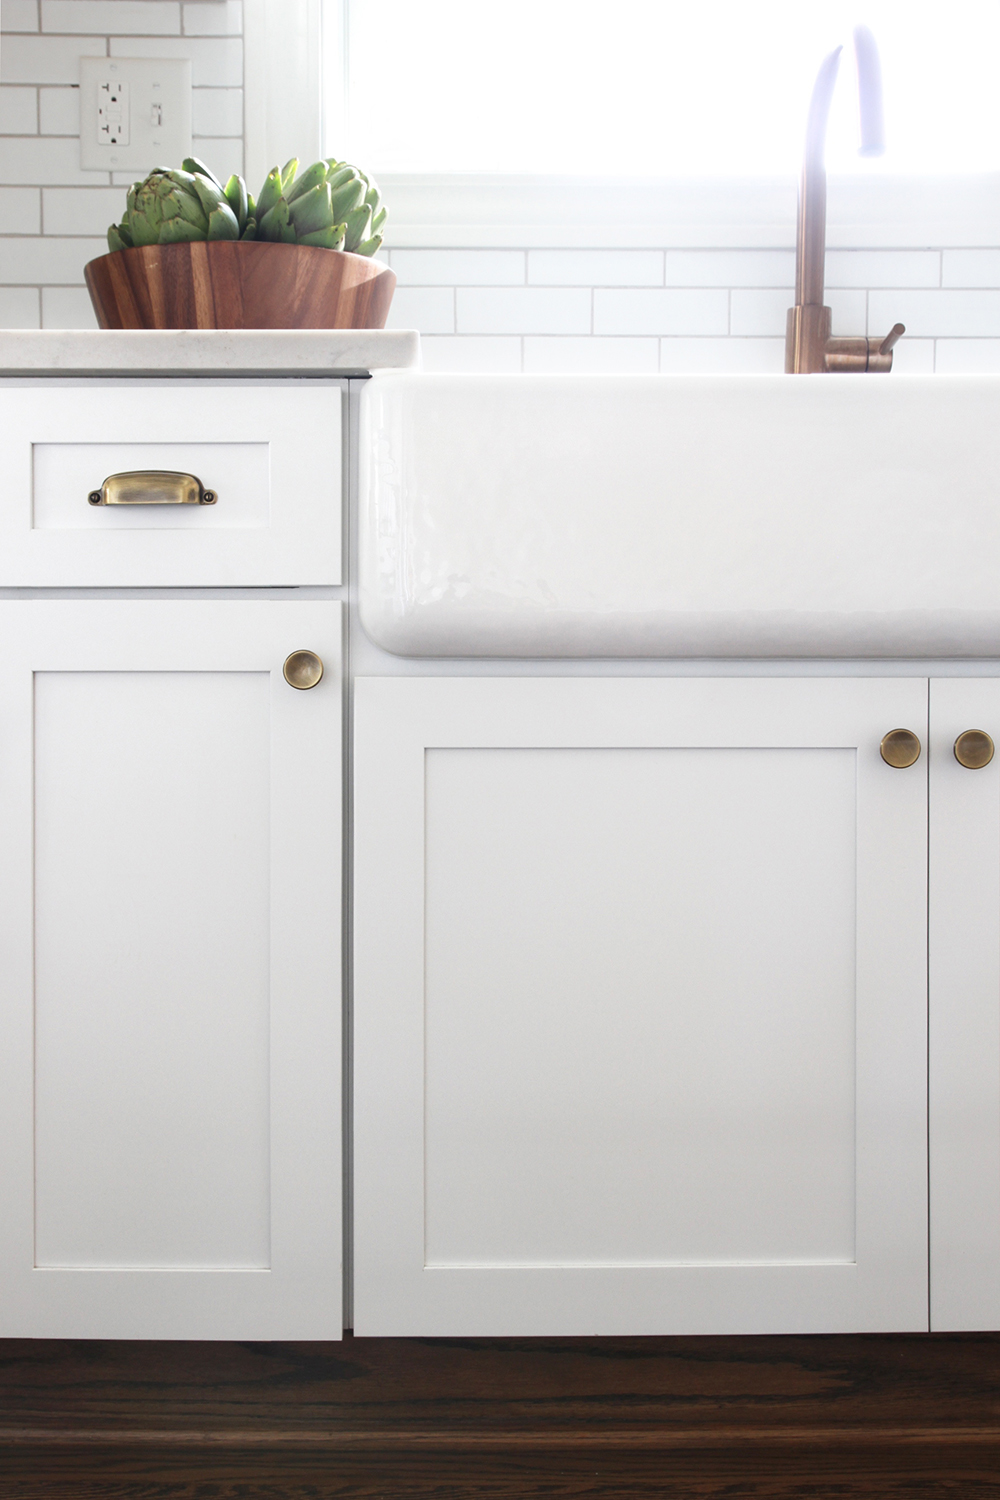 My Favorite Readymade Cabinetry Colors - roomfortuesday.com